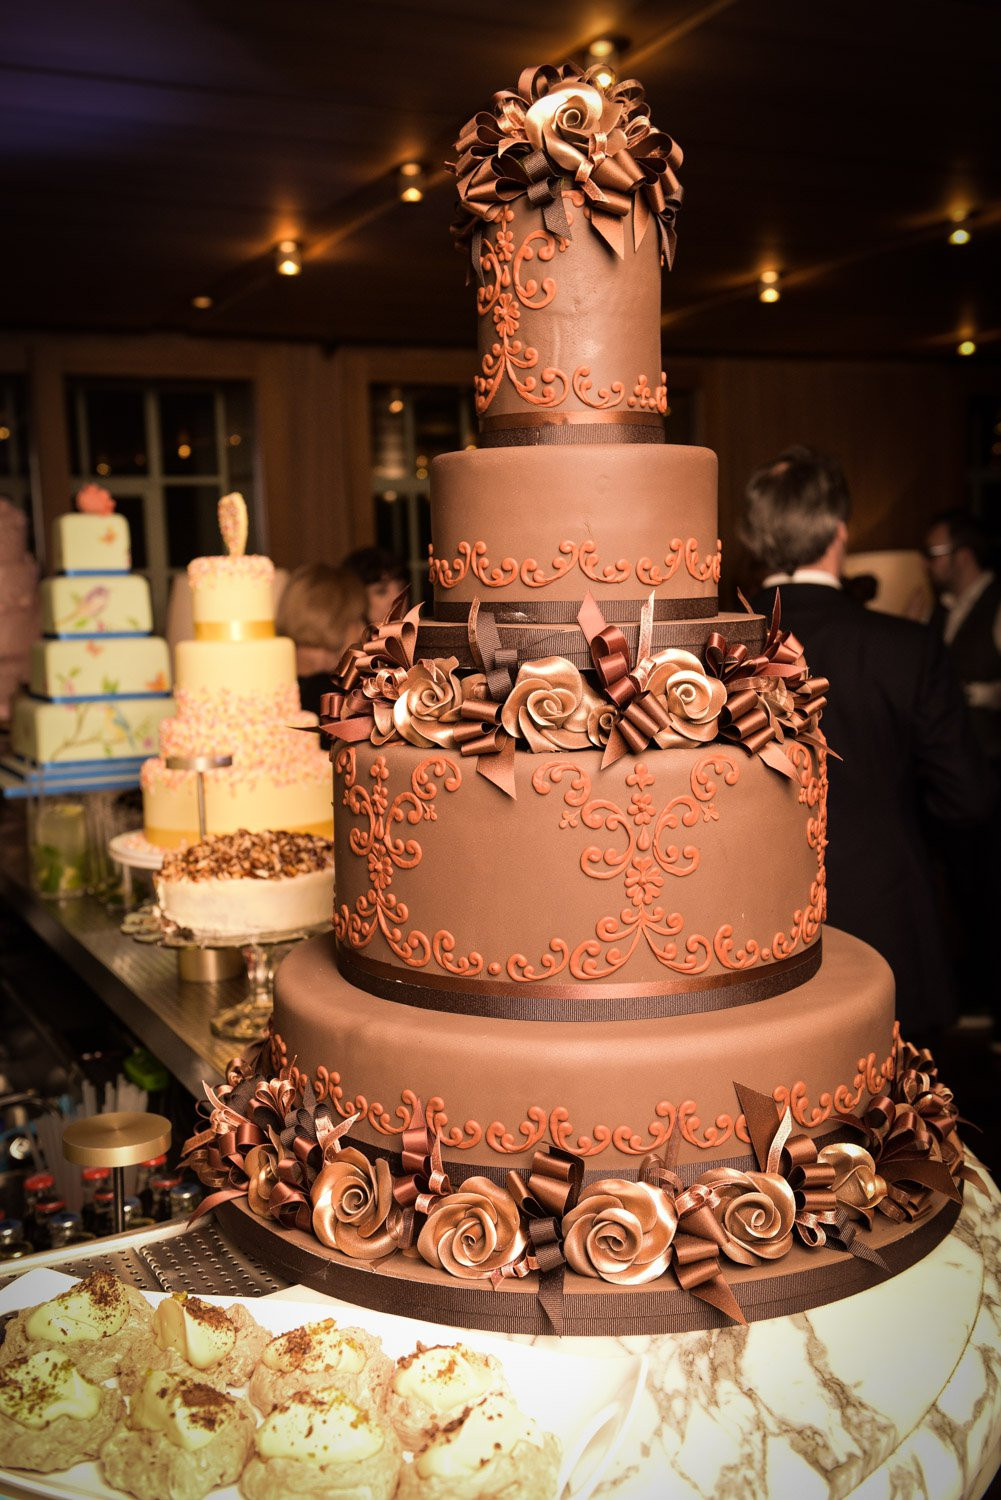 Most Extravagant Wedding Cakes  9 Most Extravagant And Expensive Celebrity Wedding Cakes